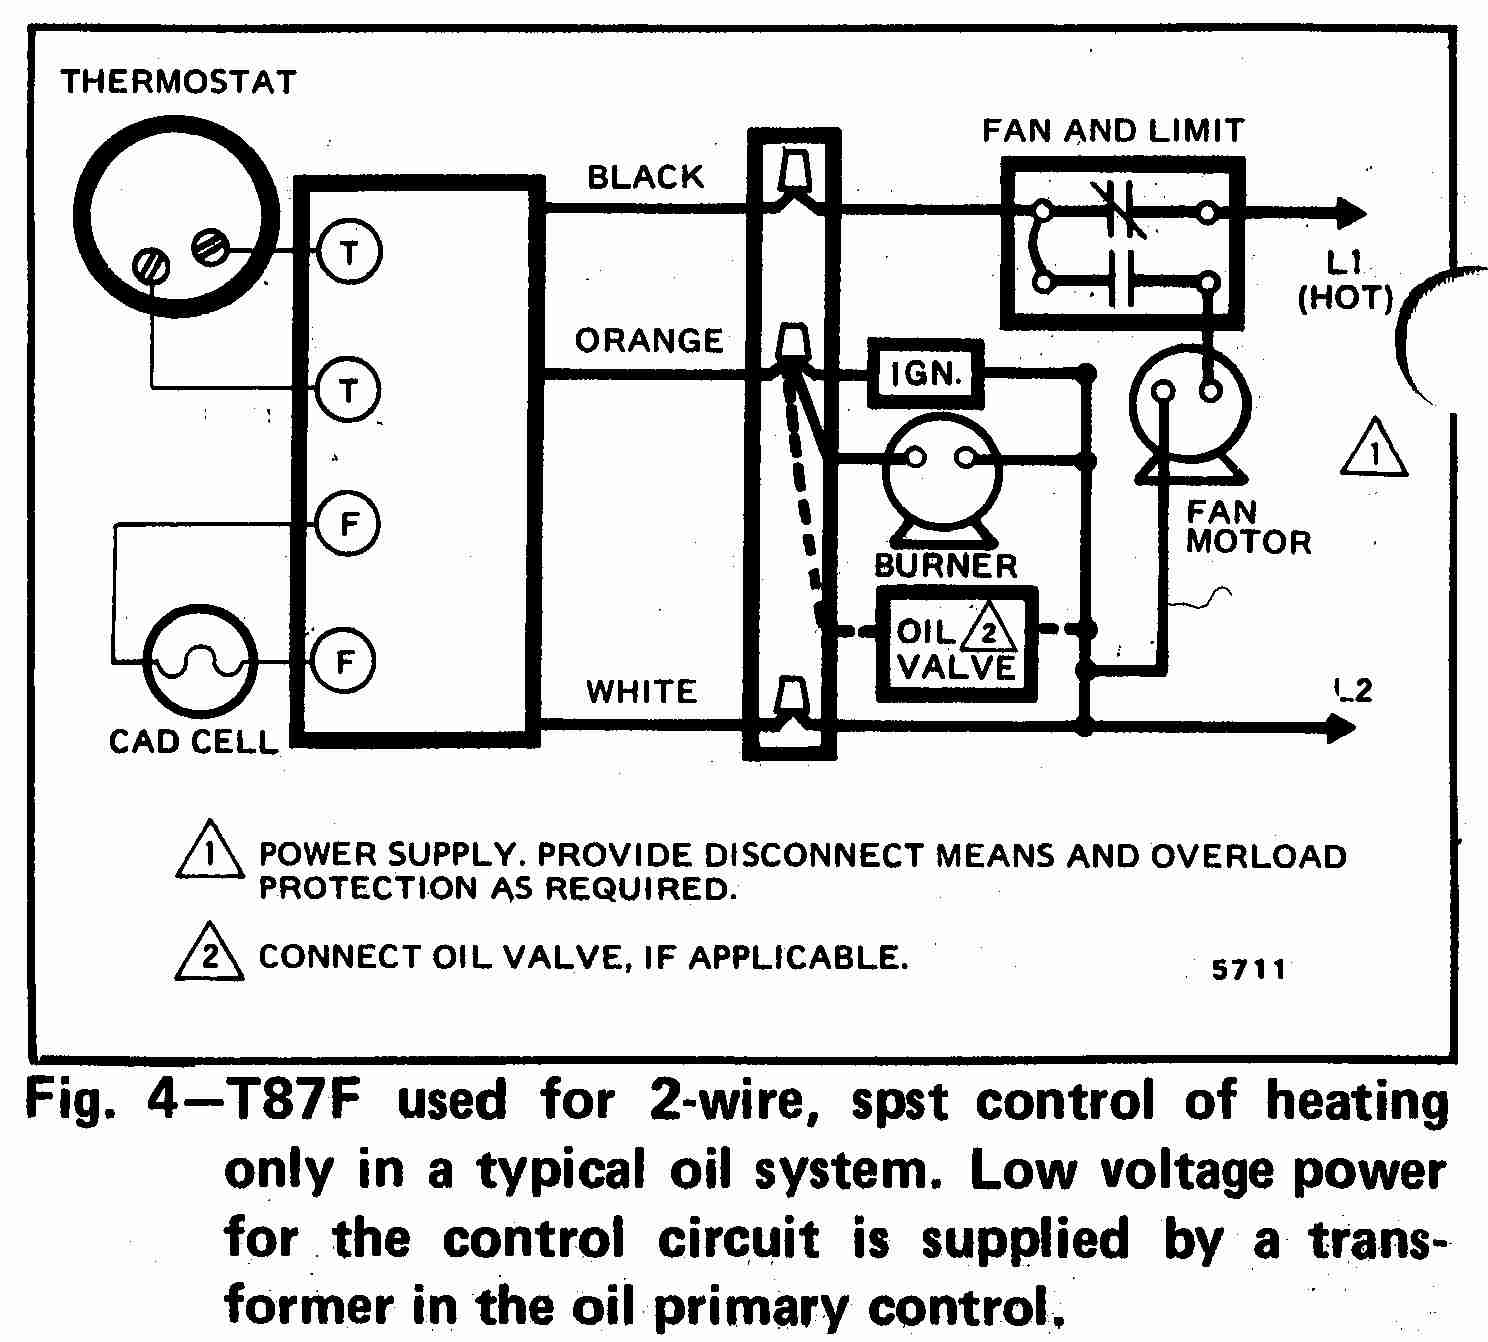 room thermostat wiring diagrams for hvac systems. Black Bedroom Furniture Sets. Home Design Ideas